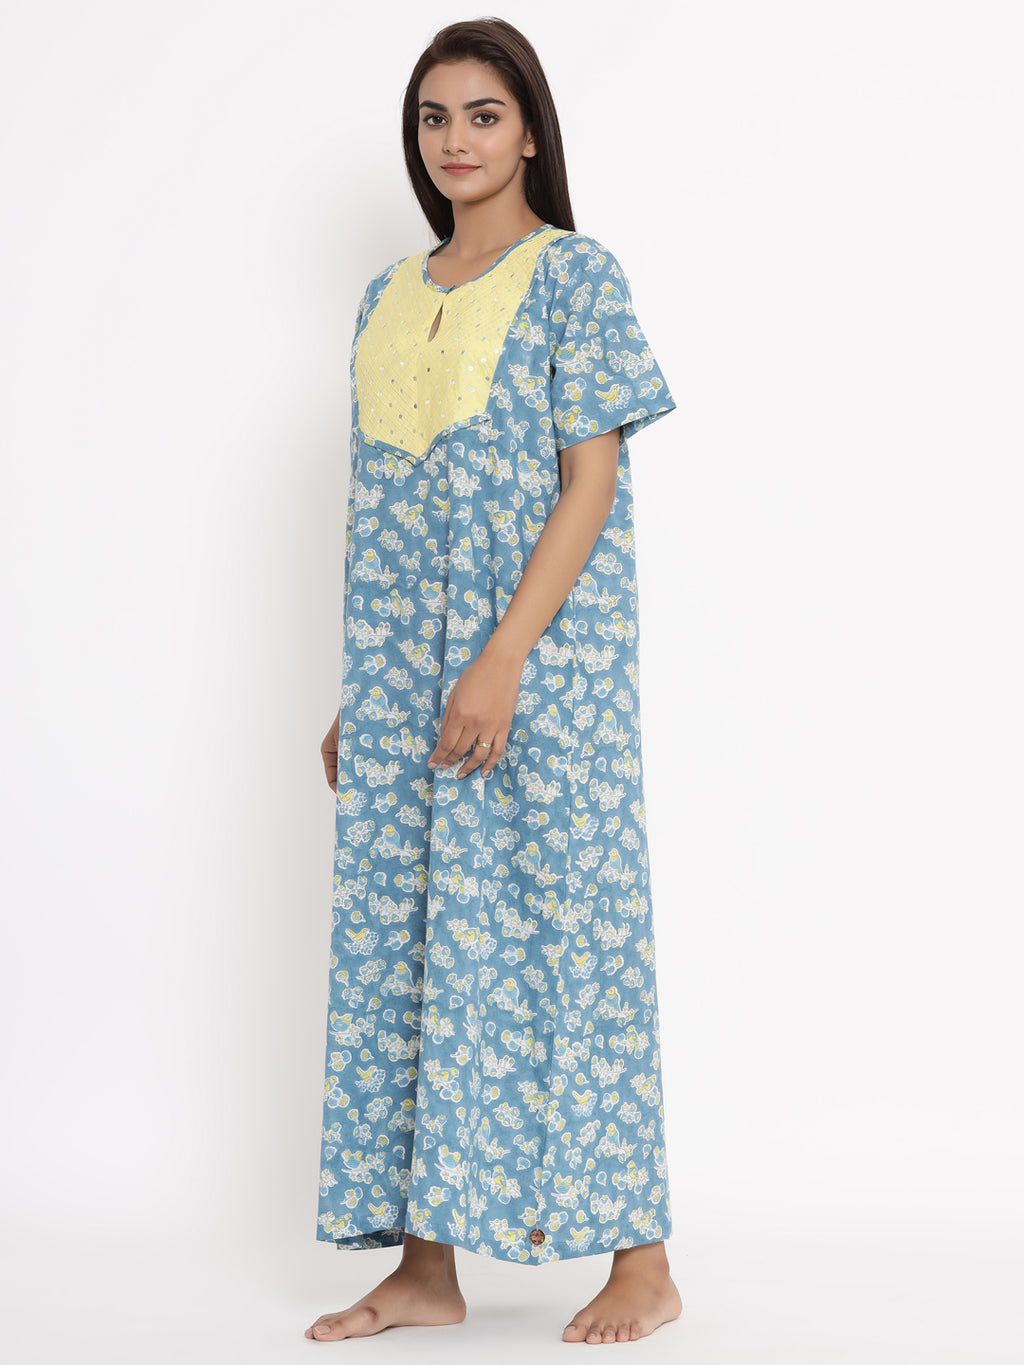 SKY BLUE HAND EMBROIDERED MIRROR WORK PURE COTTON NIGHTWEAR